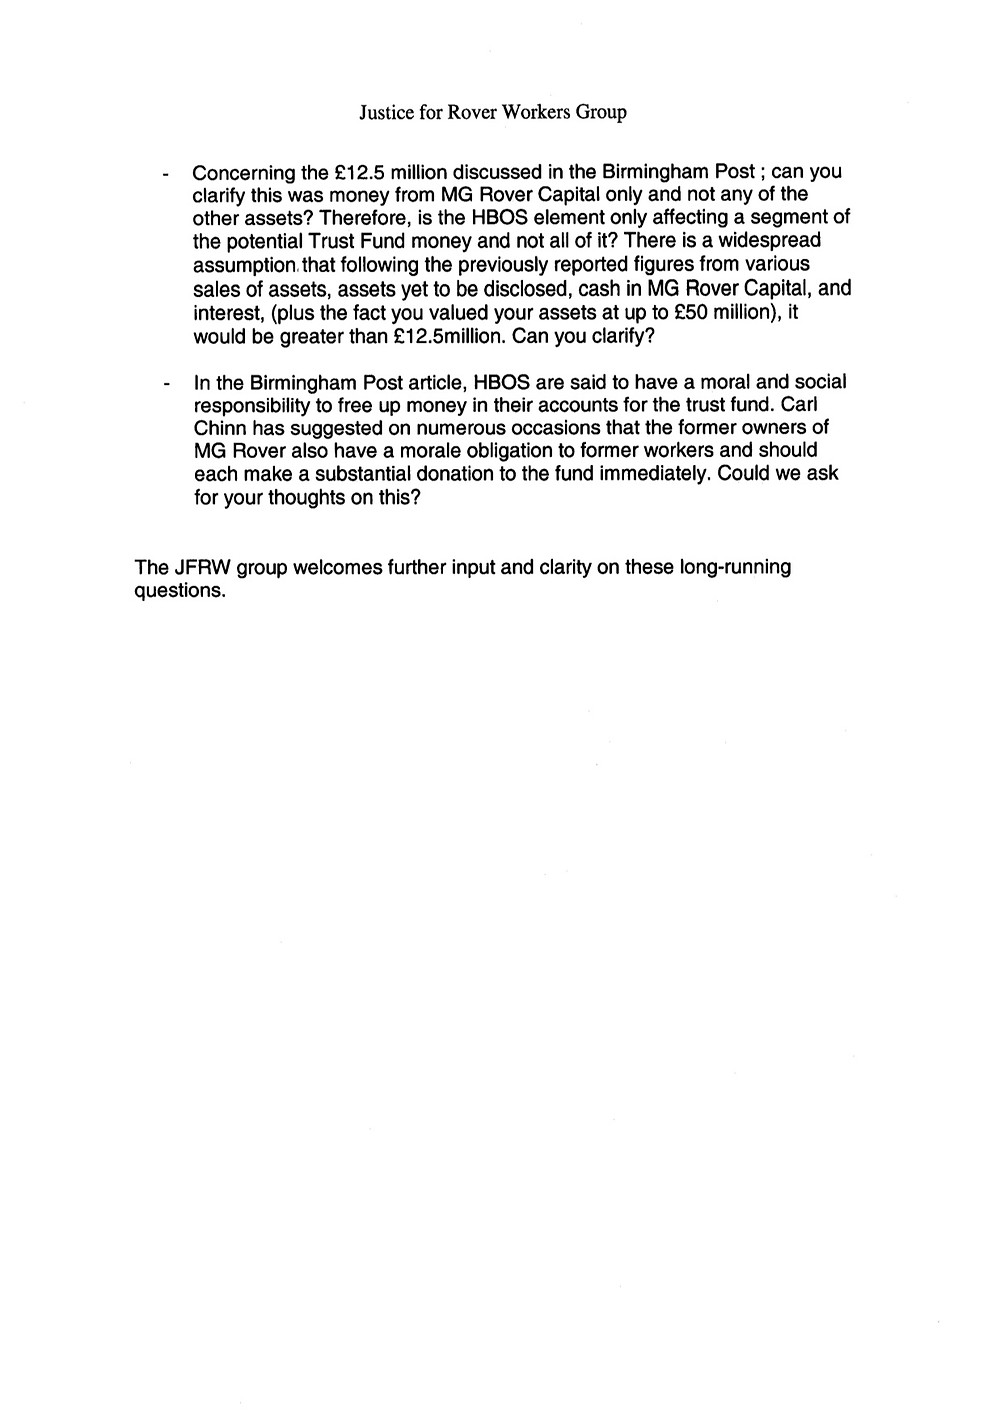 public-letter-4th-may-2010-2.jpg